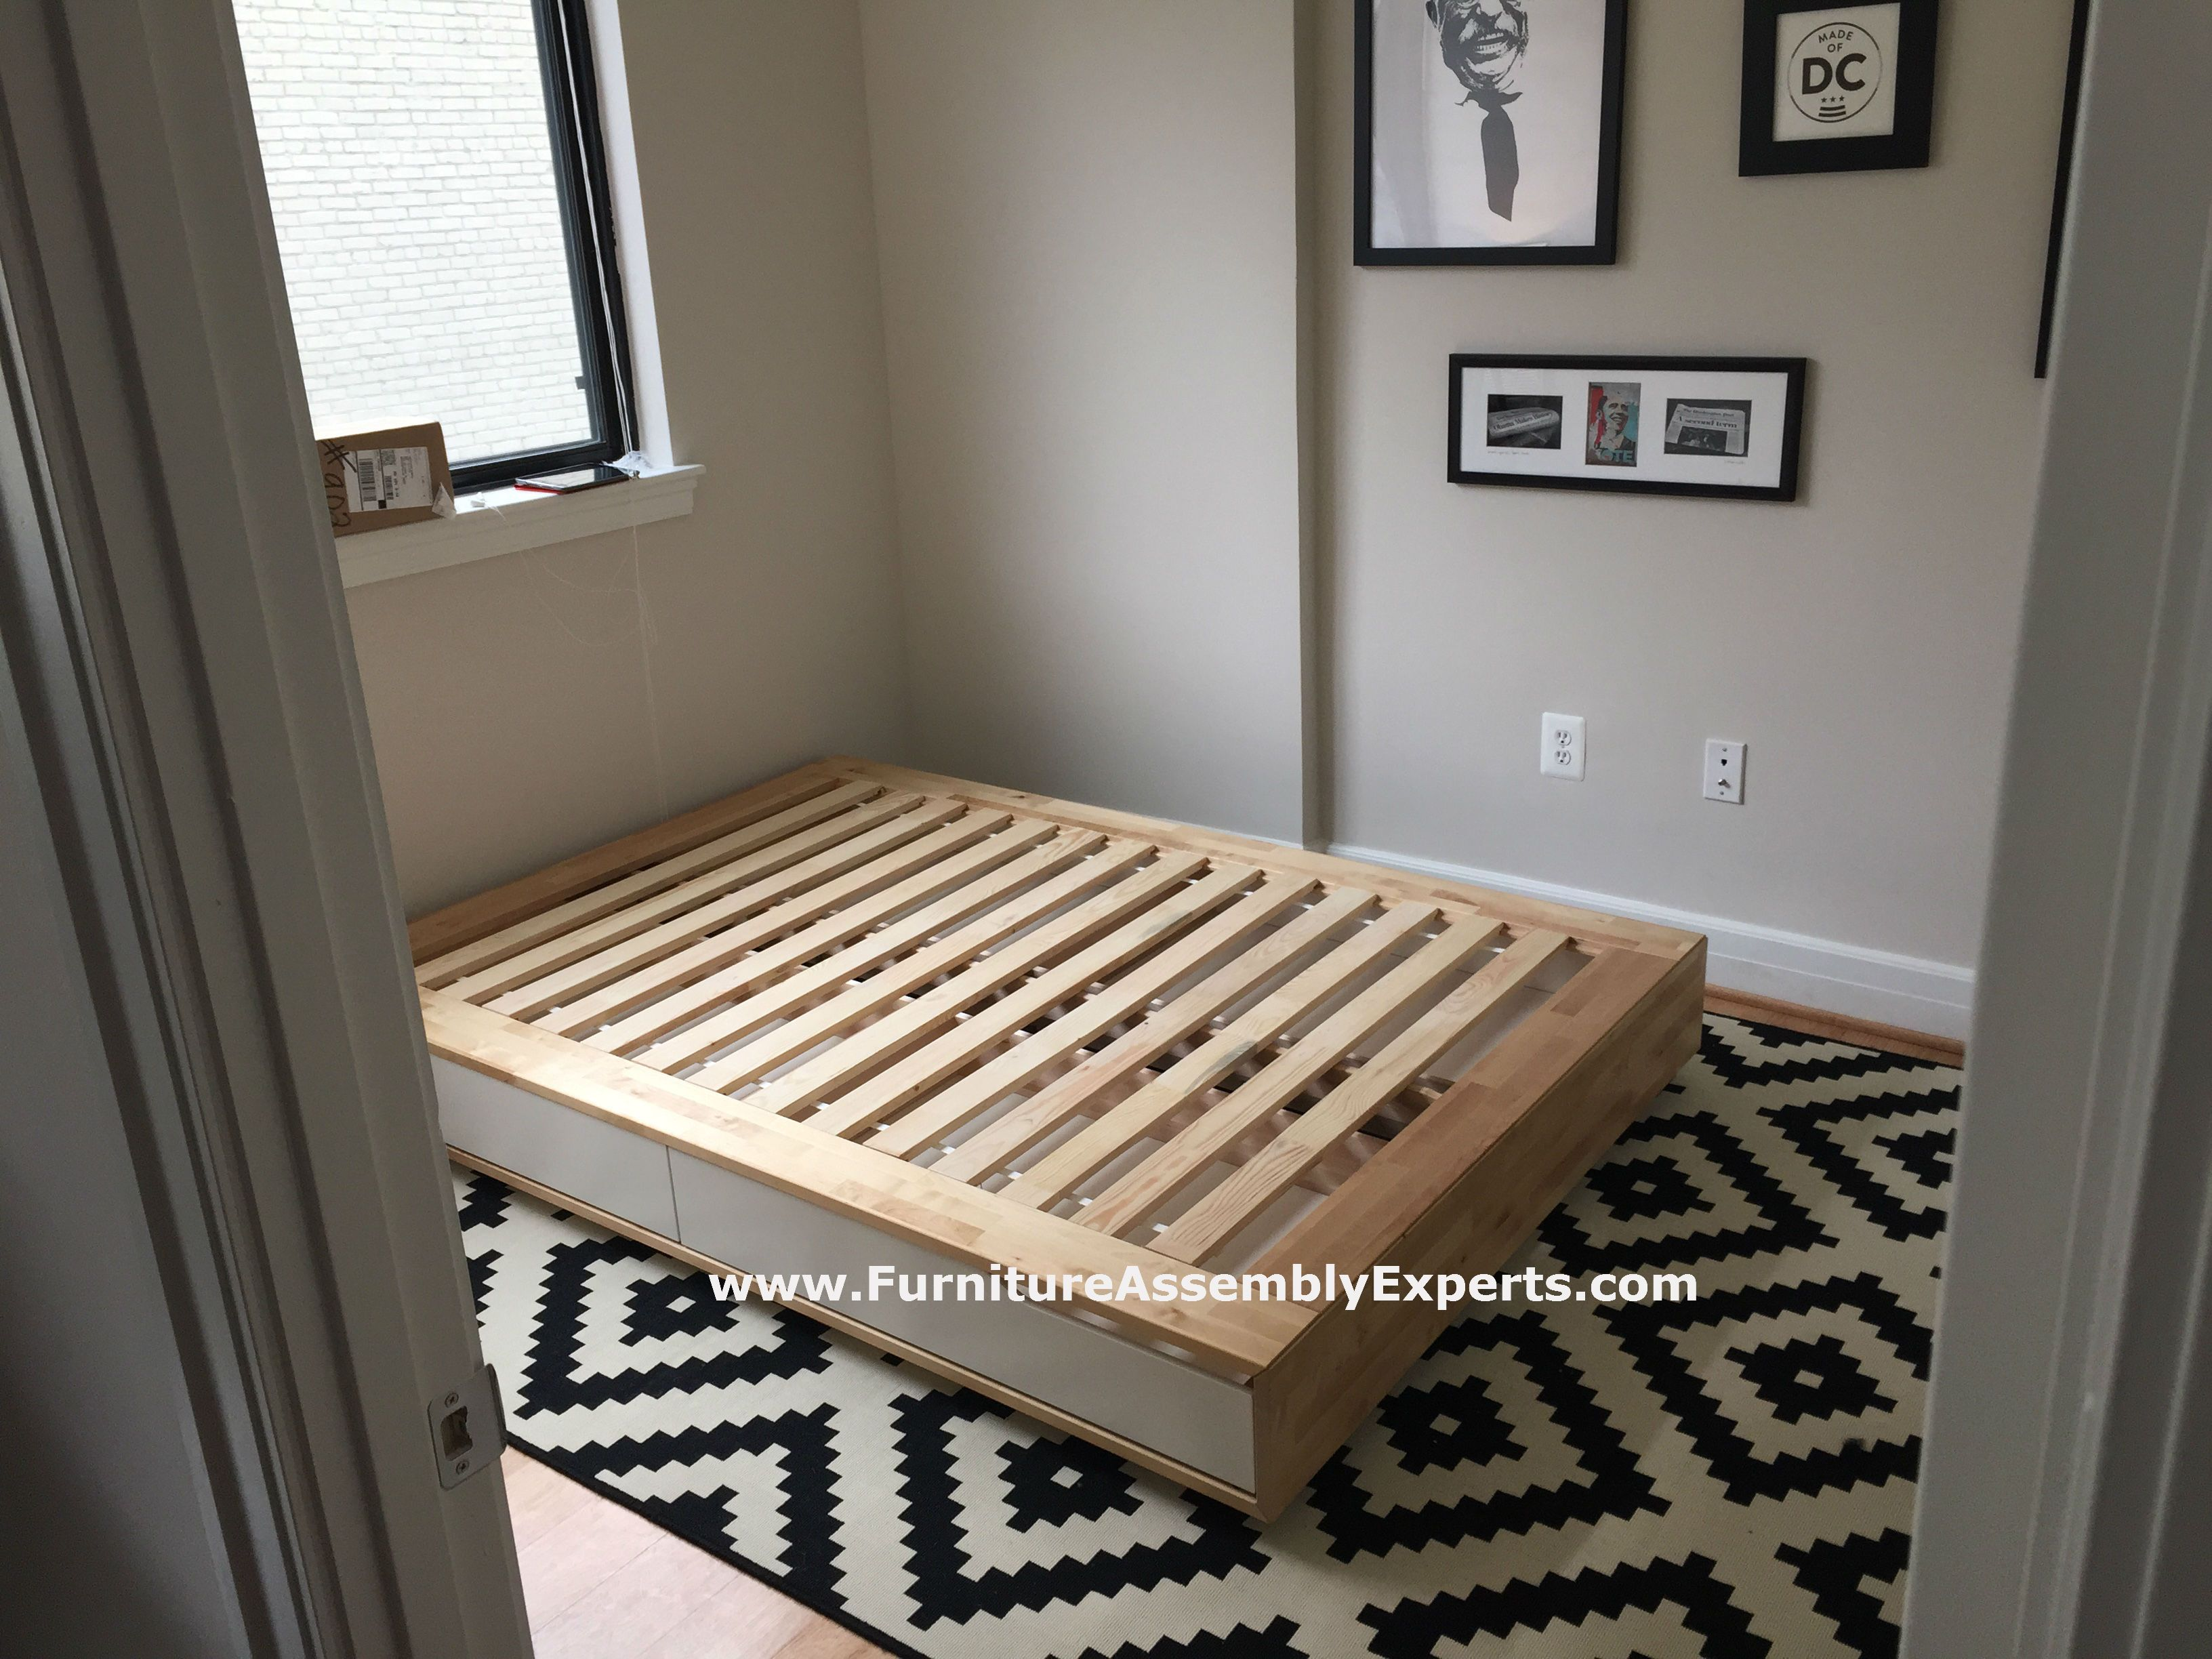 Ikea Mandal Storage Bed Assembled In New York City By Furniture